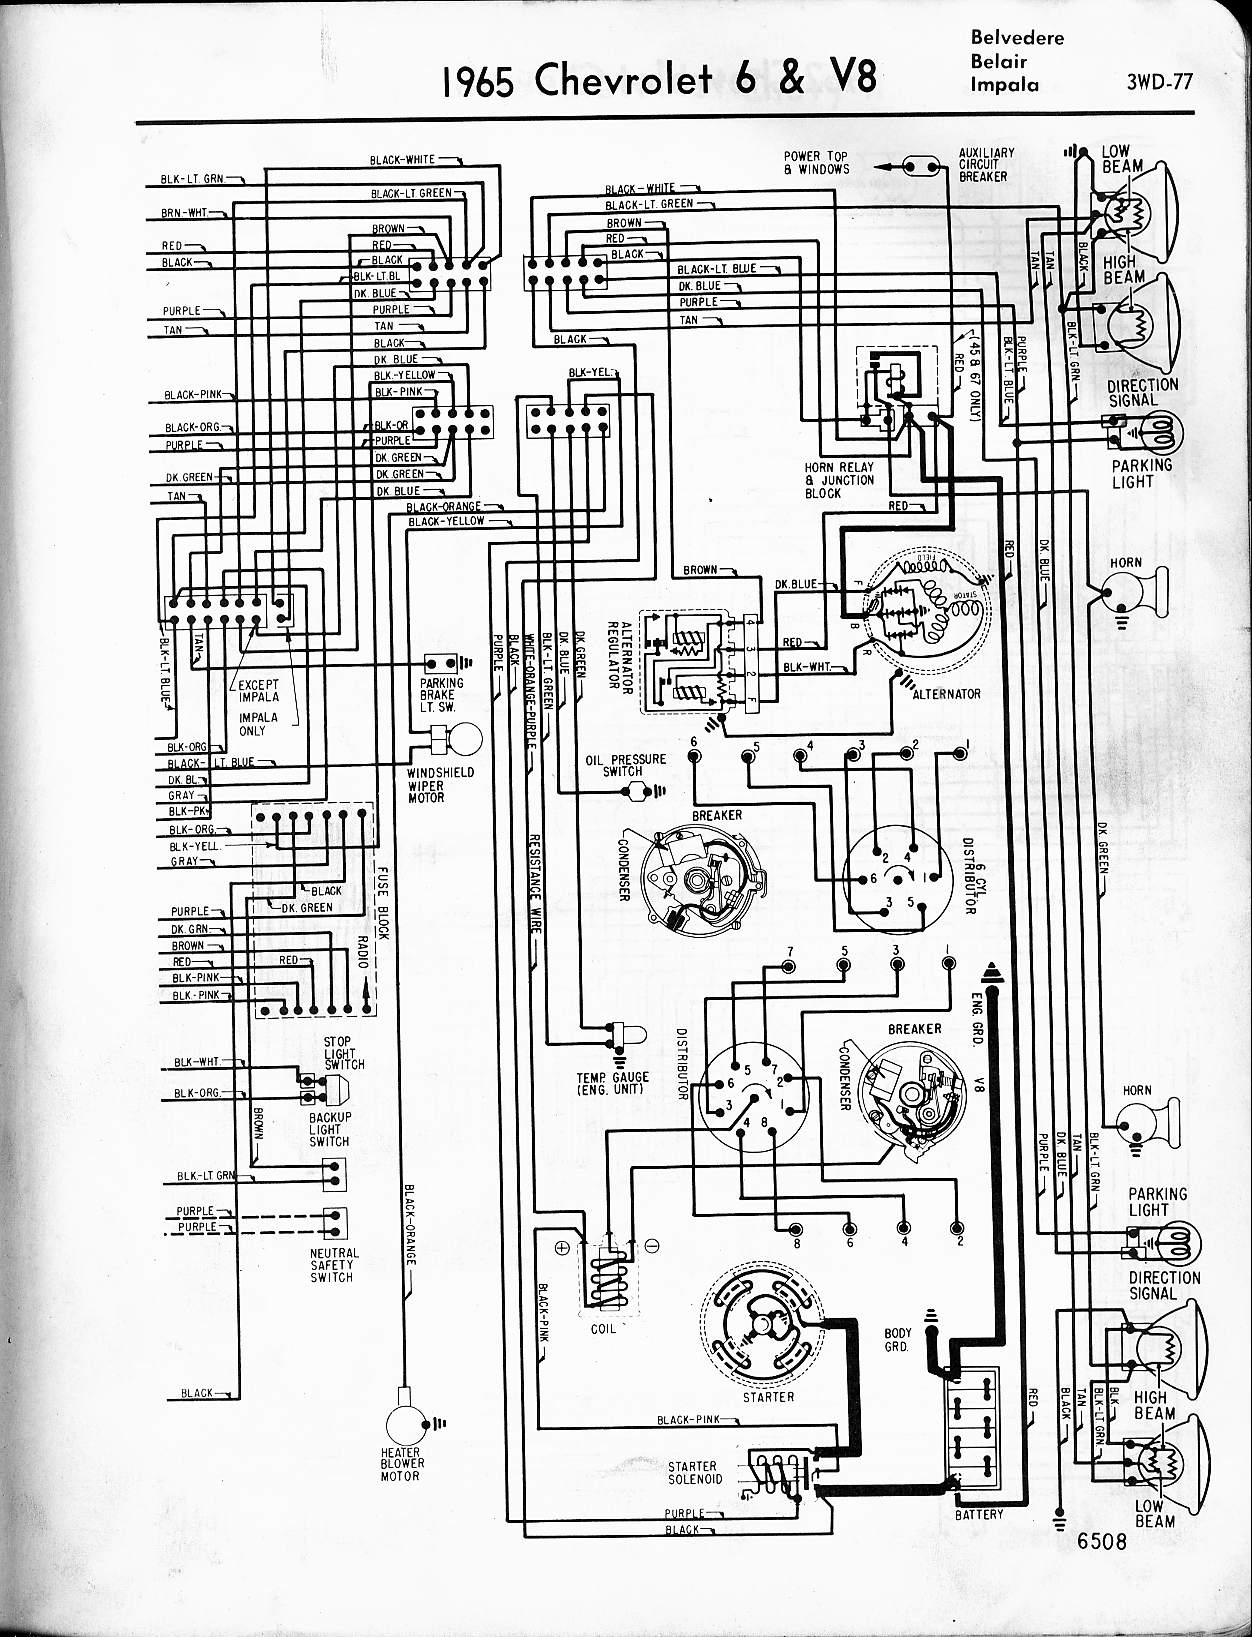 MWireChev65_3WD 077 chevy diagrams Basic Turn Signal Wiring Diagram at crackthecode.co